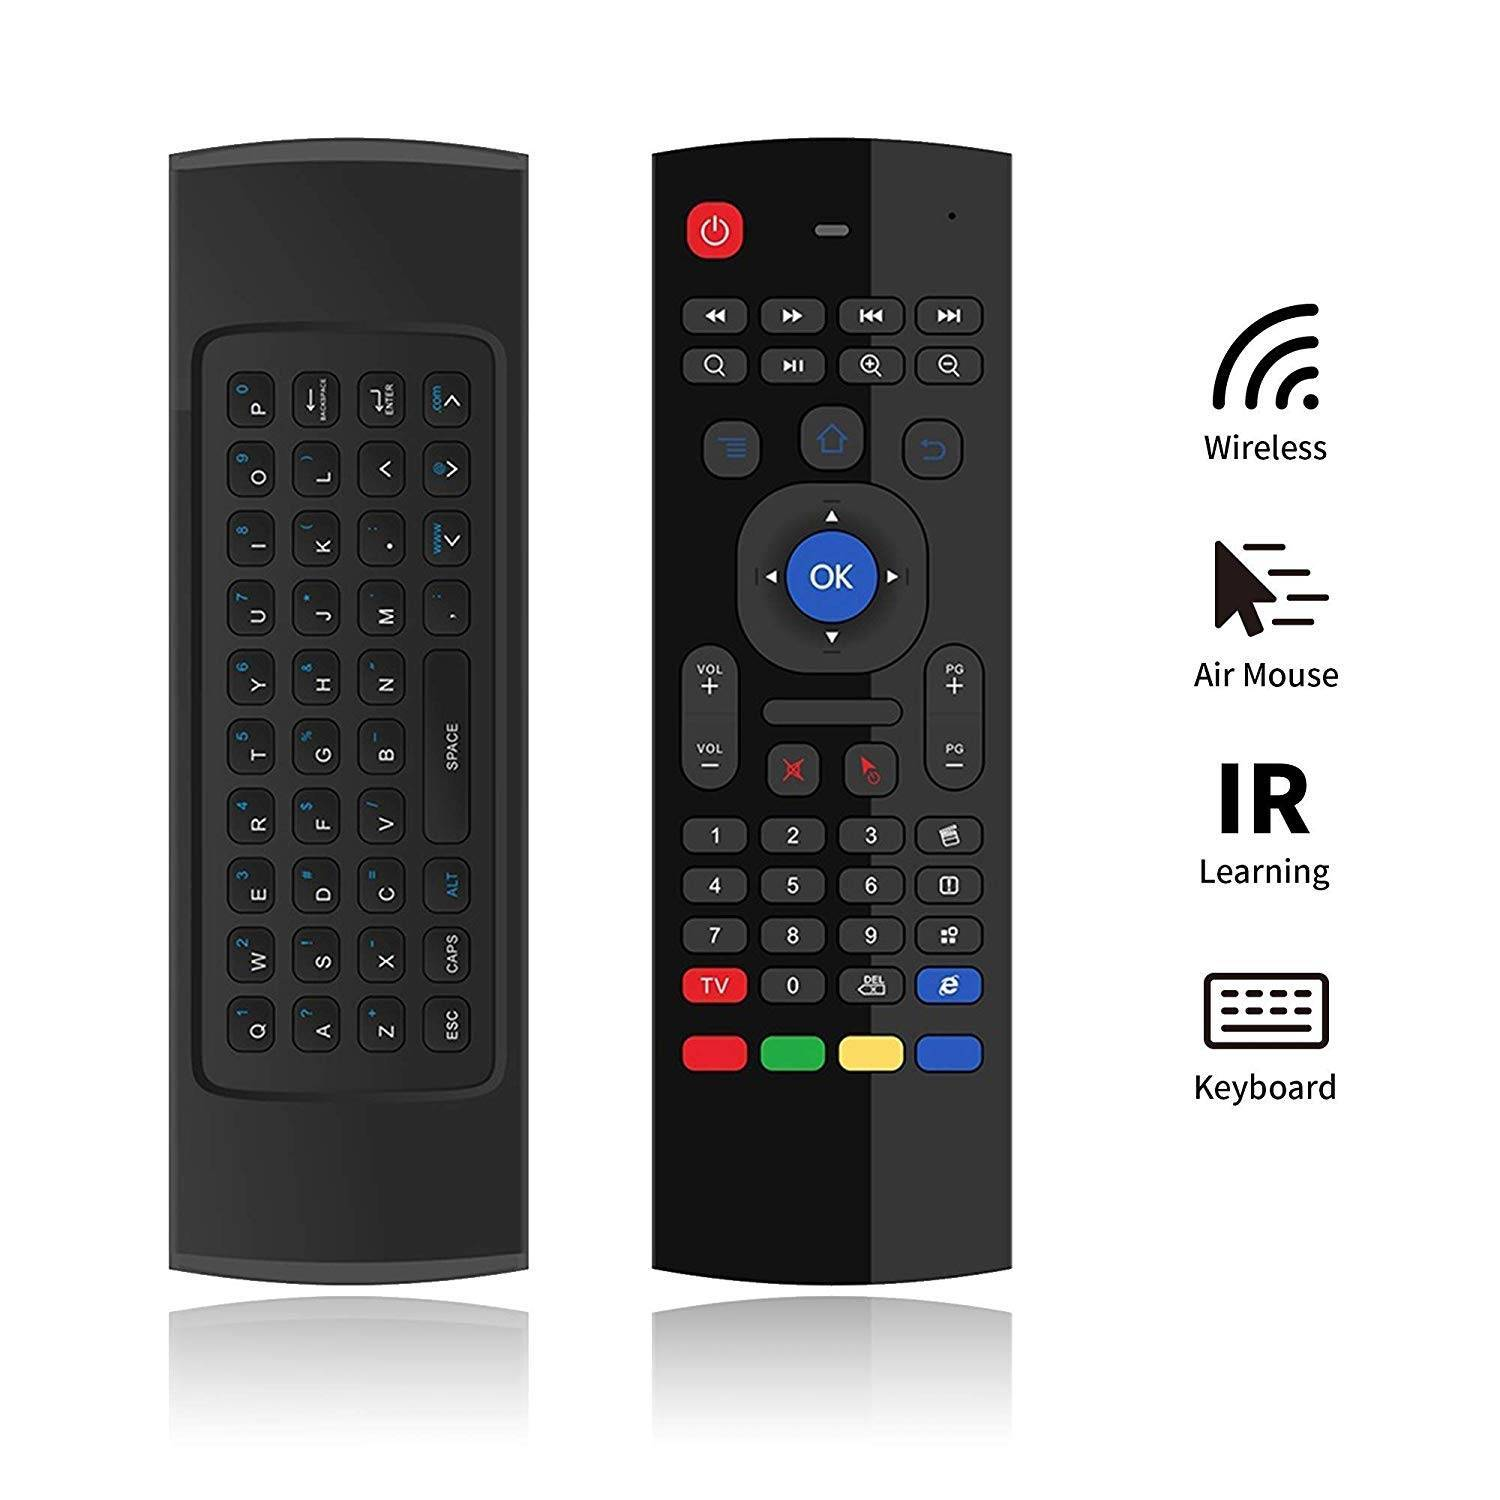 MX3 Air-Mouse Remote Controller w/ FULL QWERTY Keyboard - Features